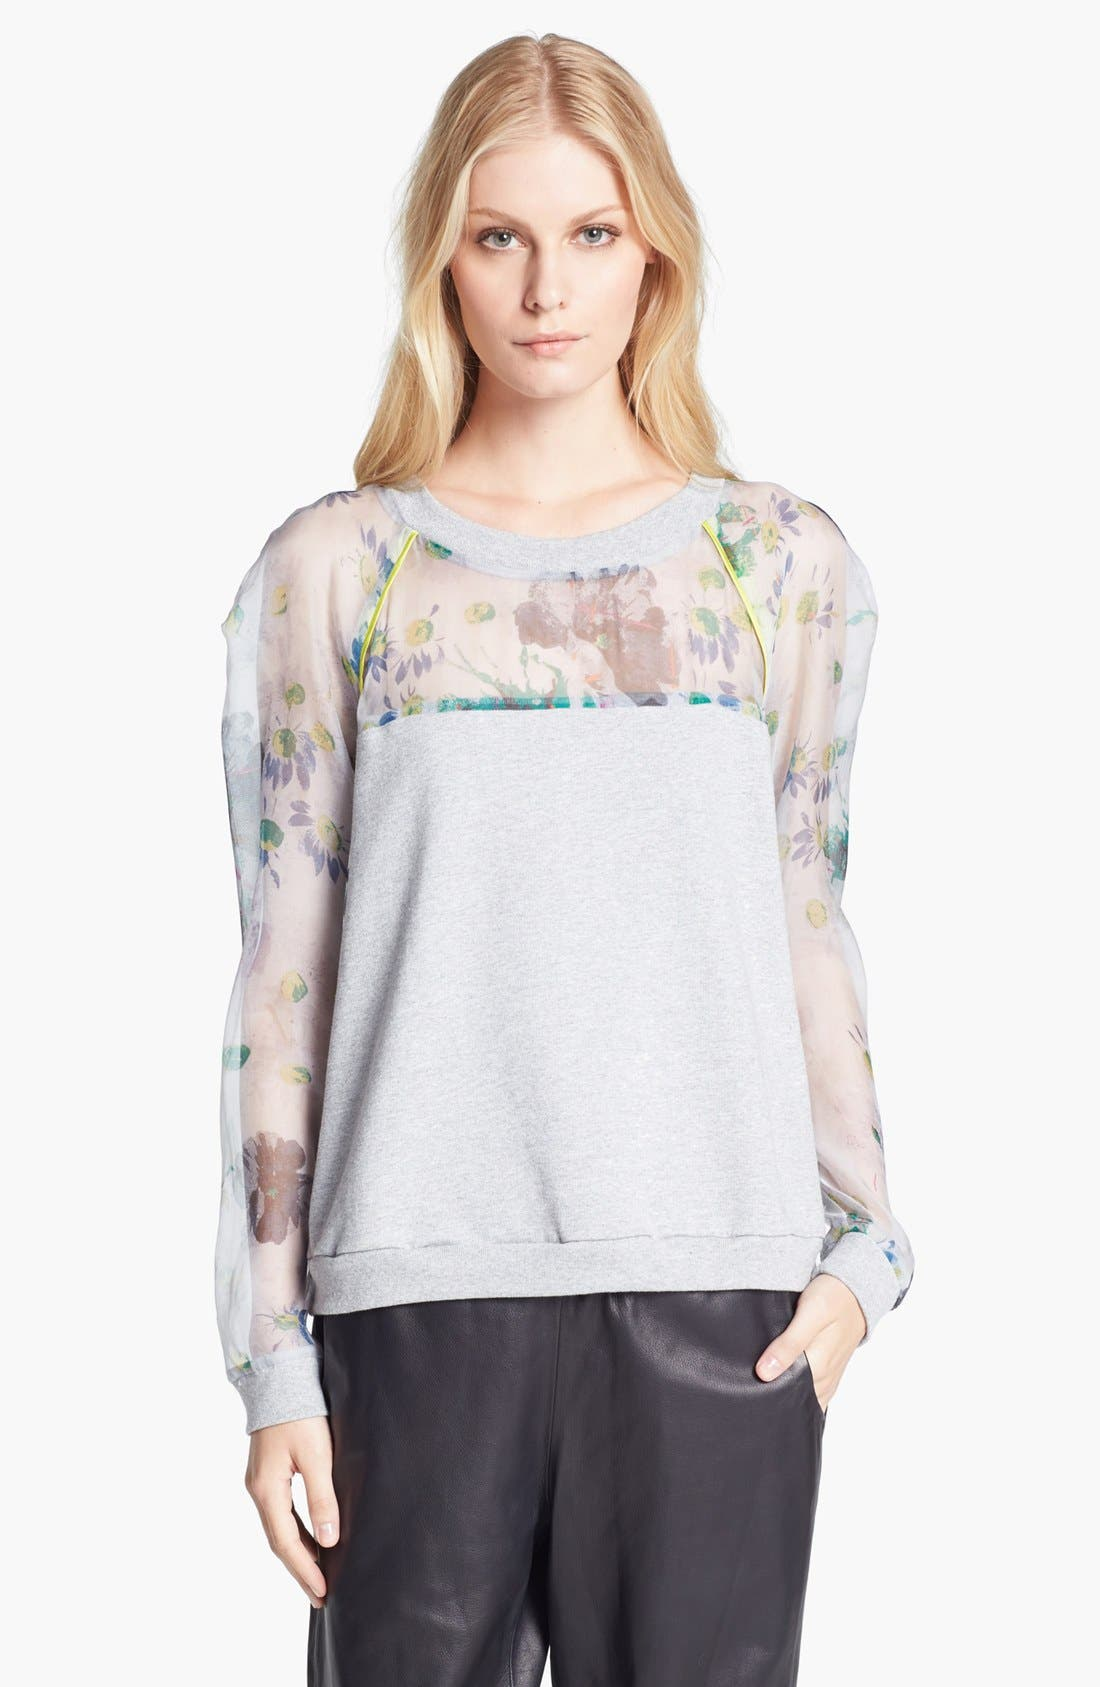 Main Image - Elizabeth and James 'Frankie' Sweatshirt